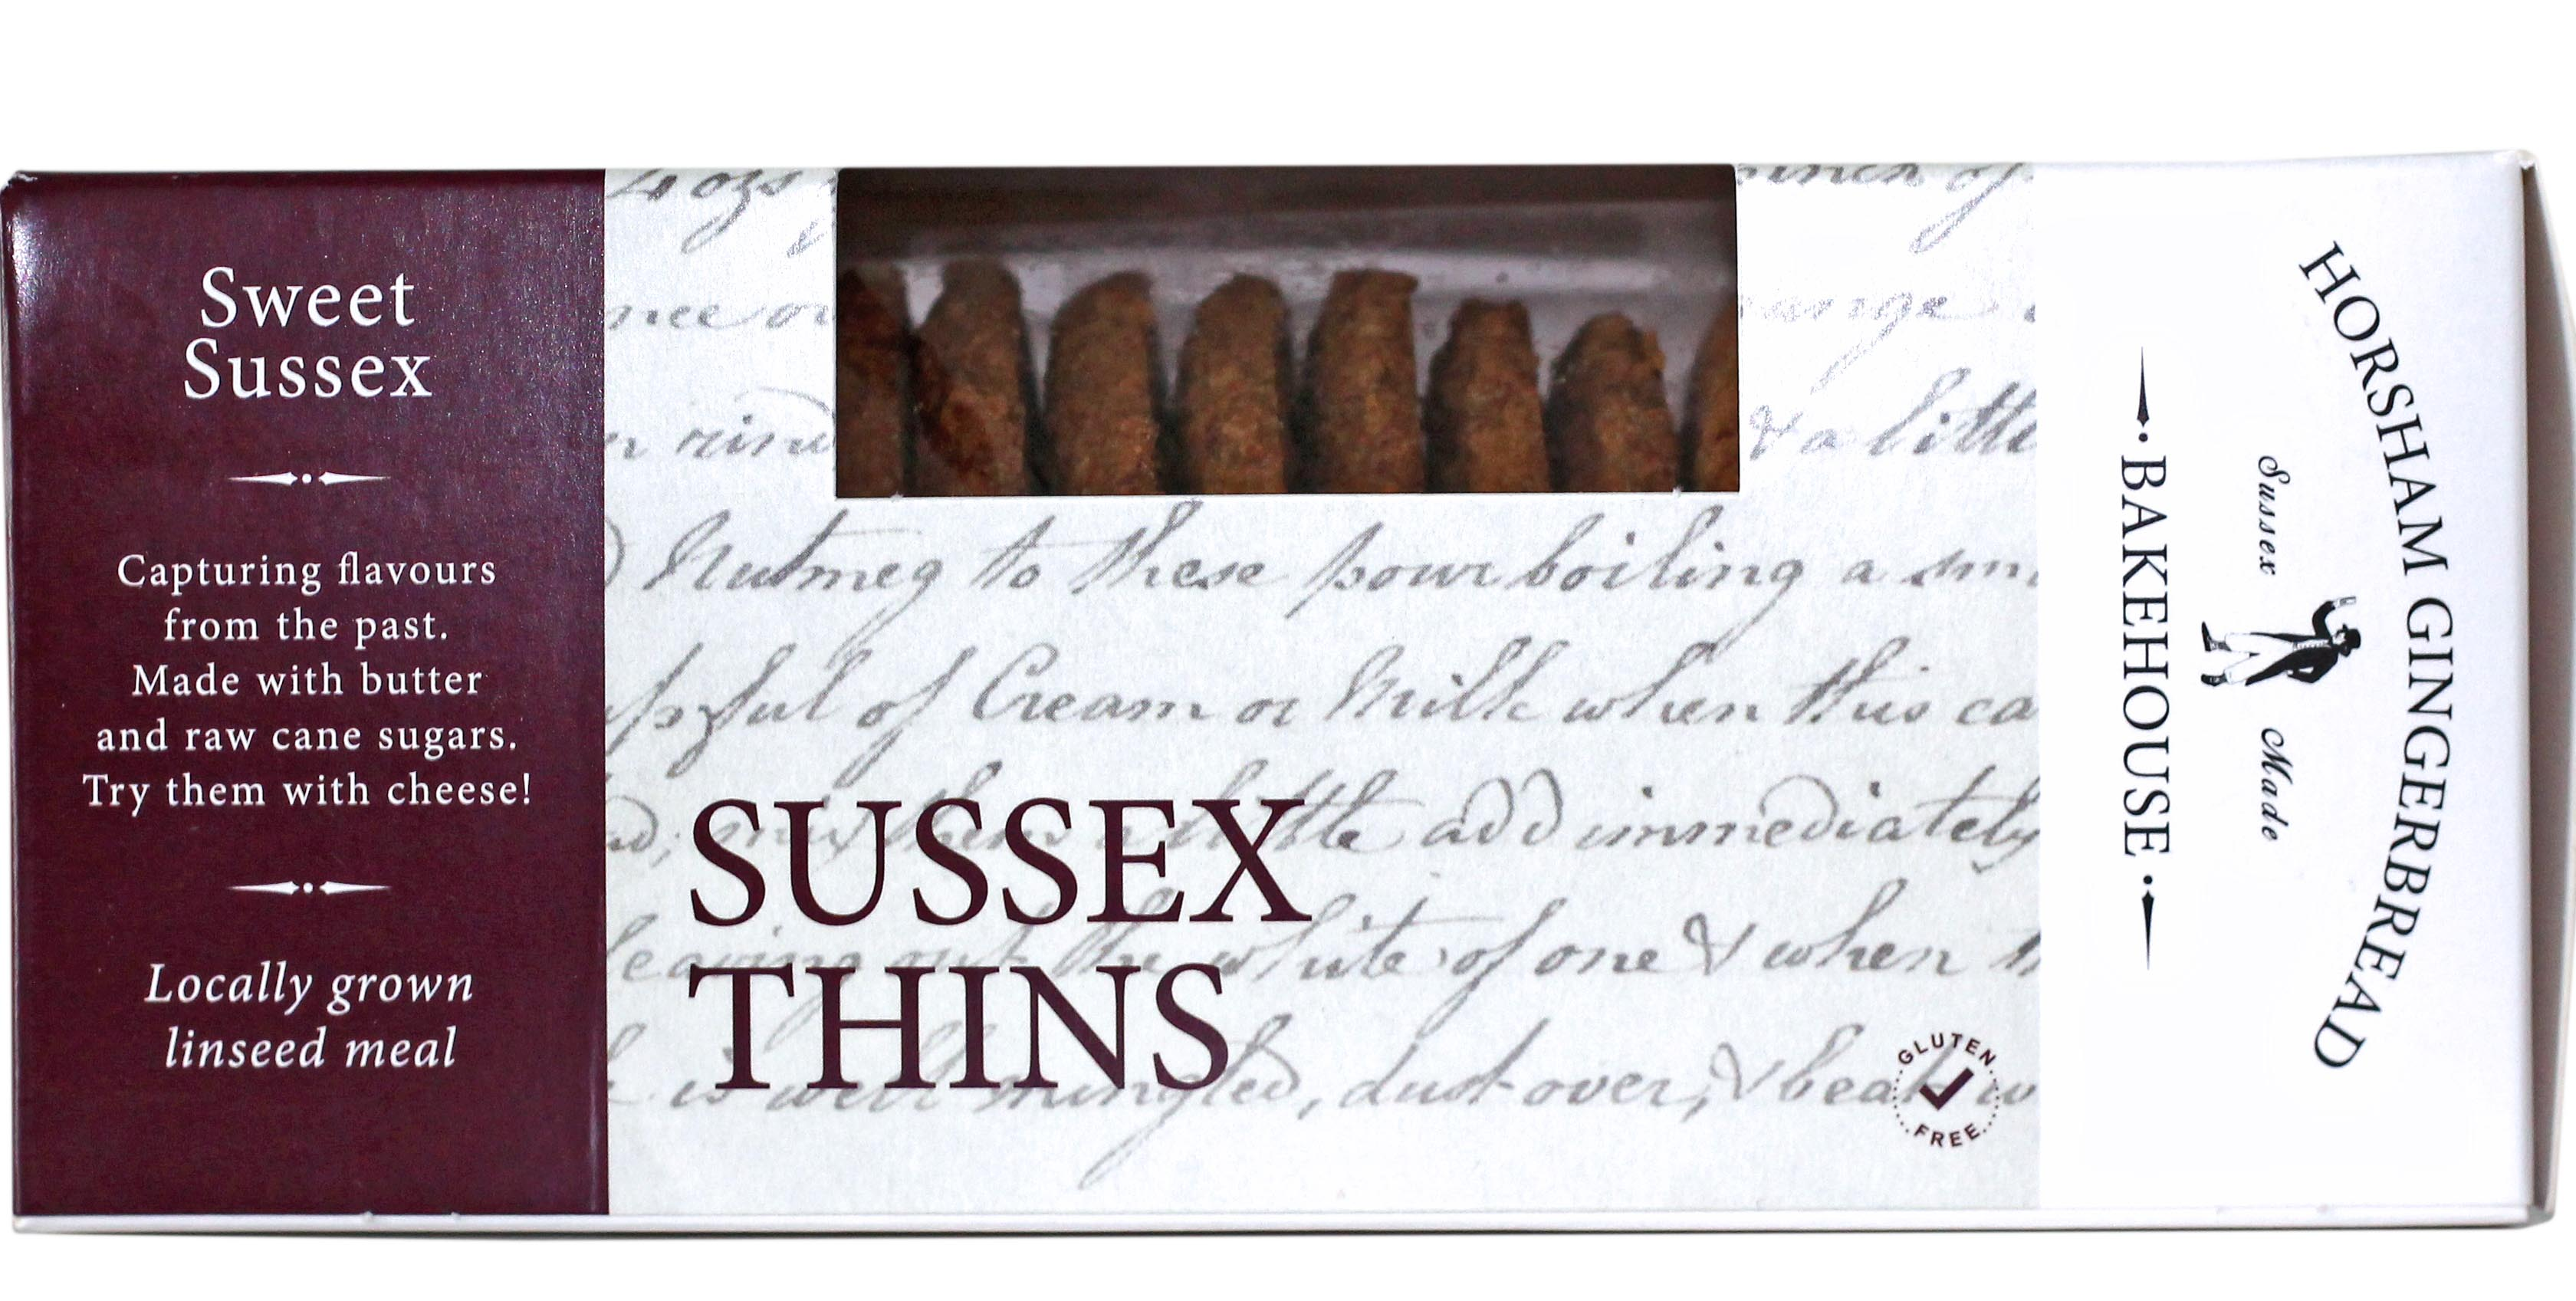 Sussex thins